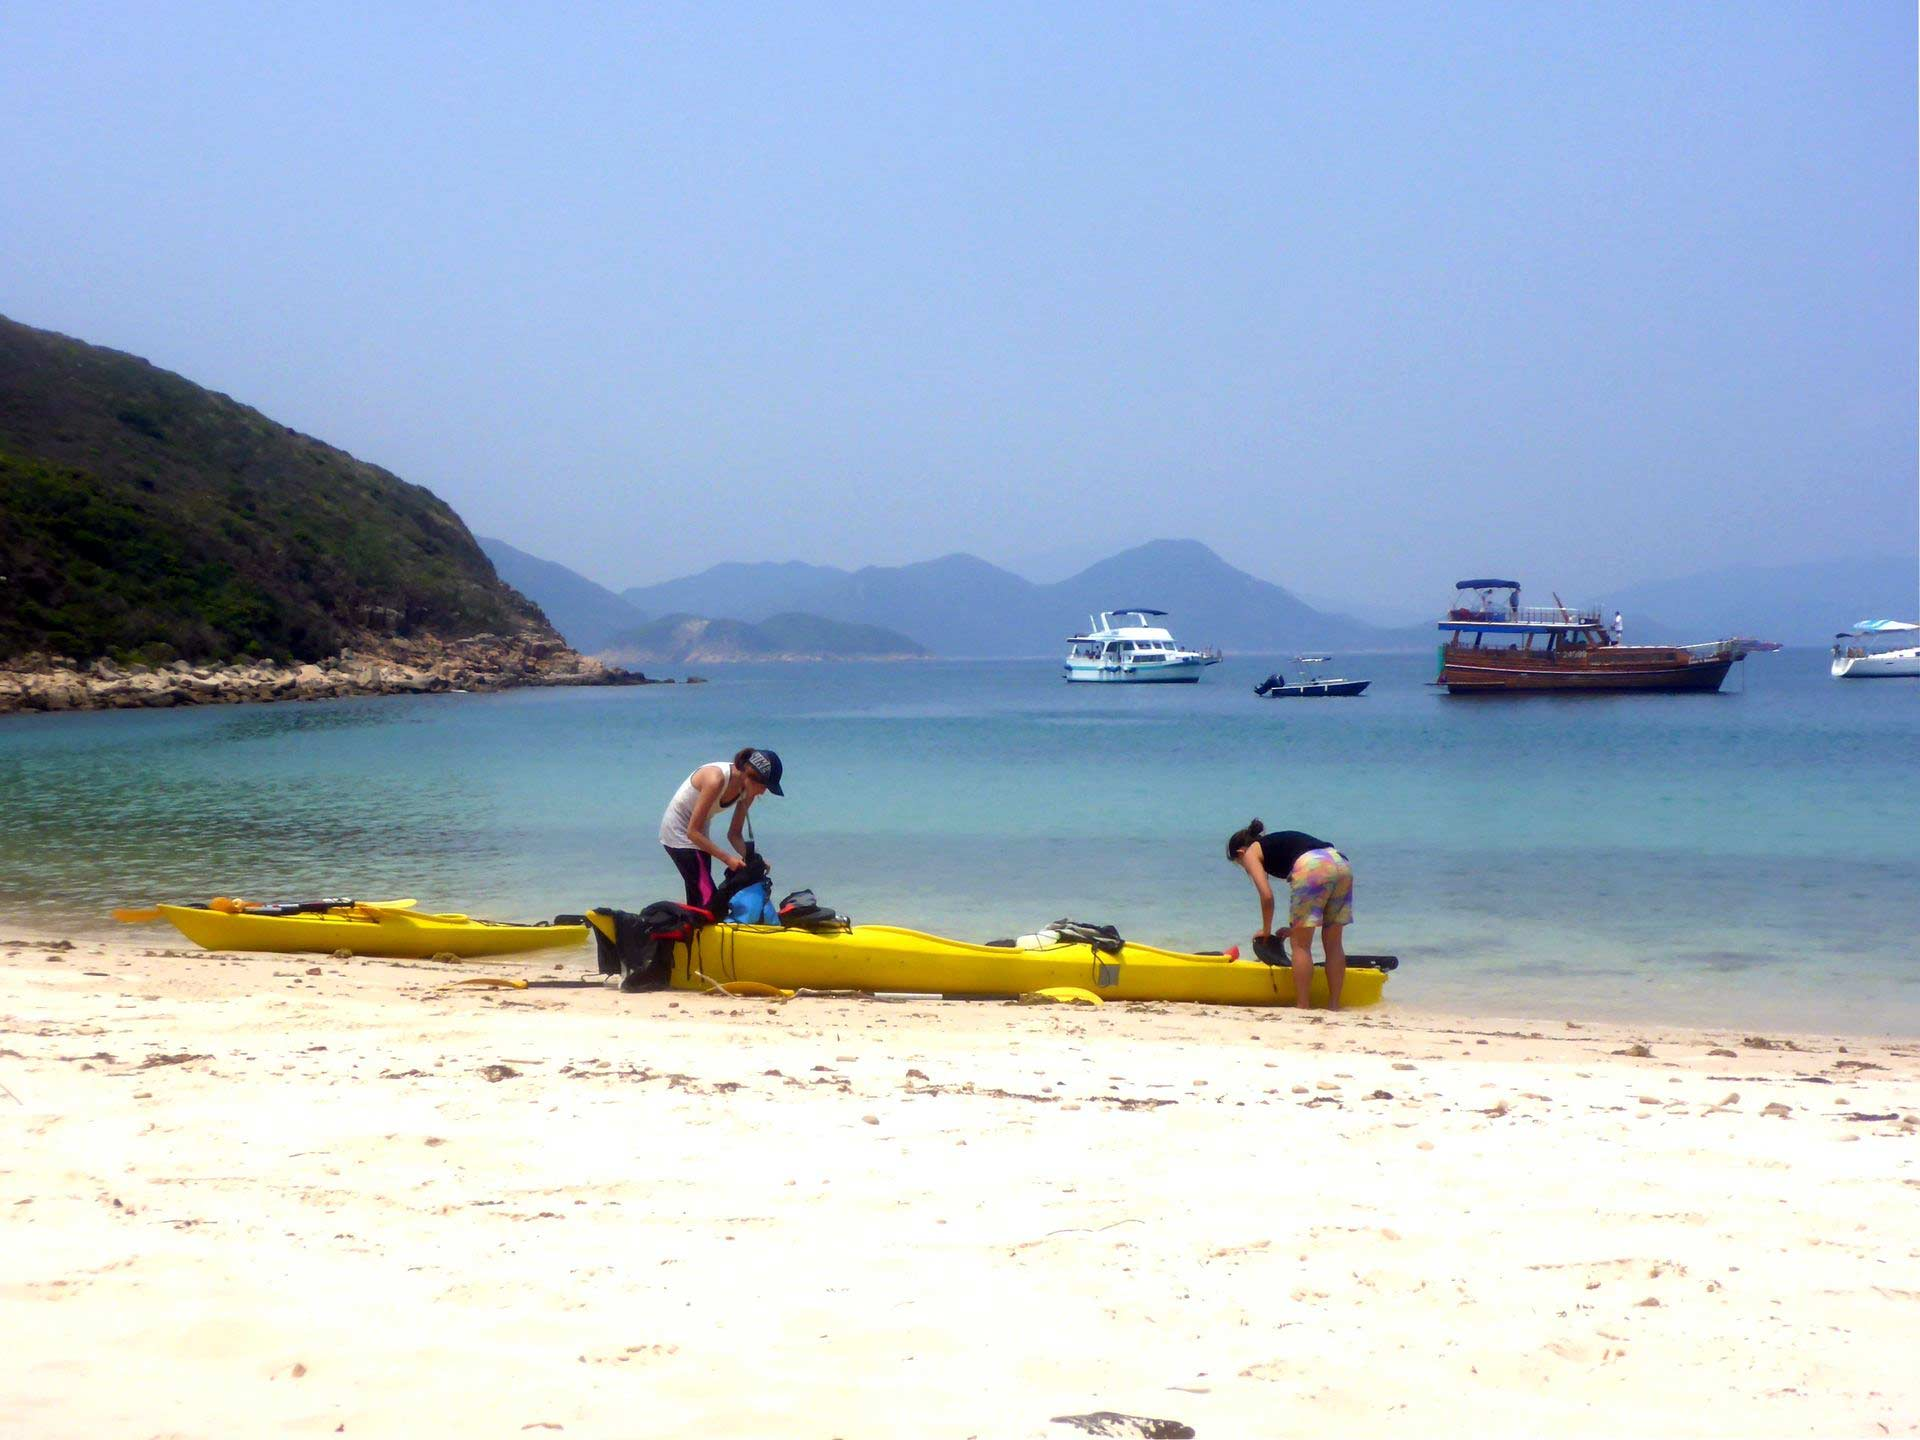 sea-kayak-UNESCO-geopark-beach2-Hong-Kong